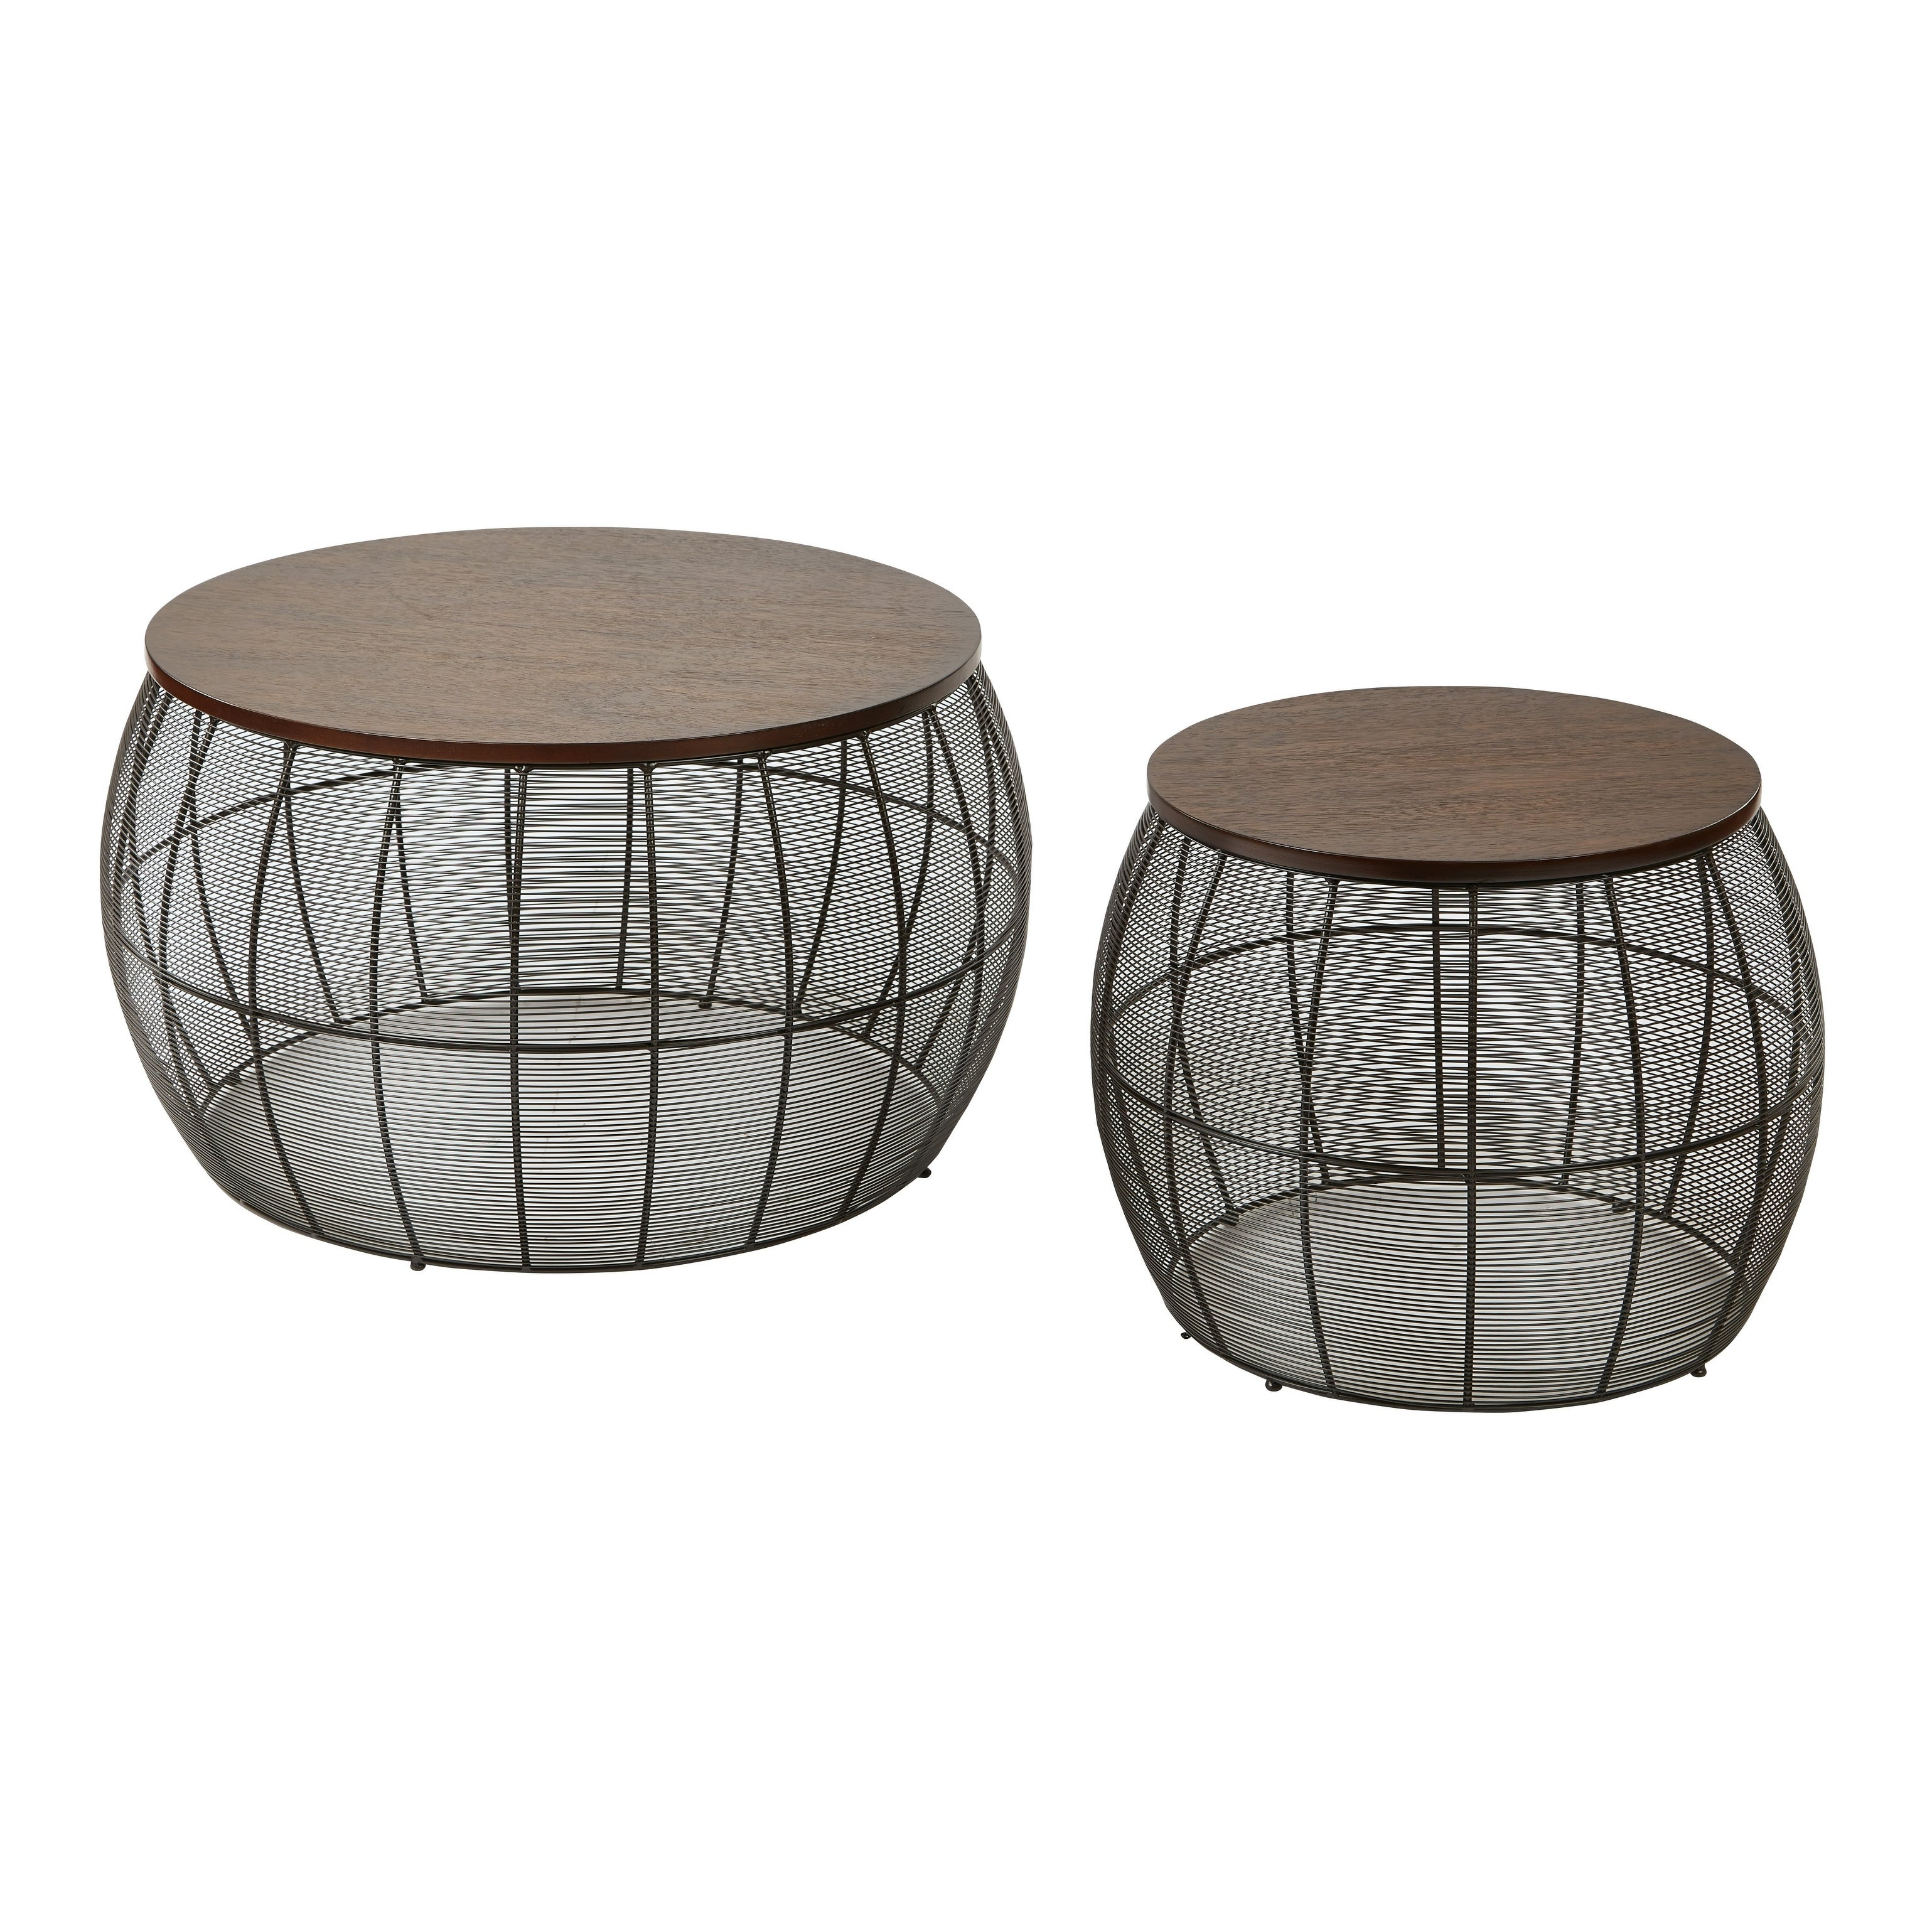 - Shop Camden 2 Piece Round Metal Accent Tables - Overstock - 25610084